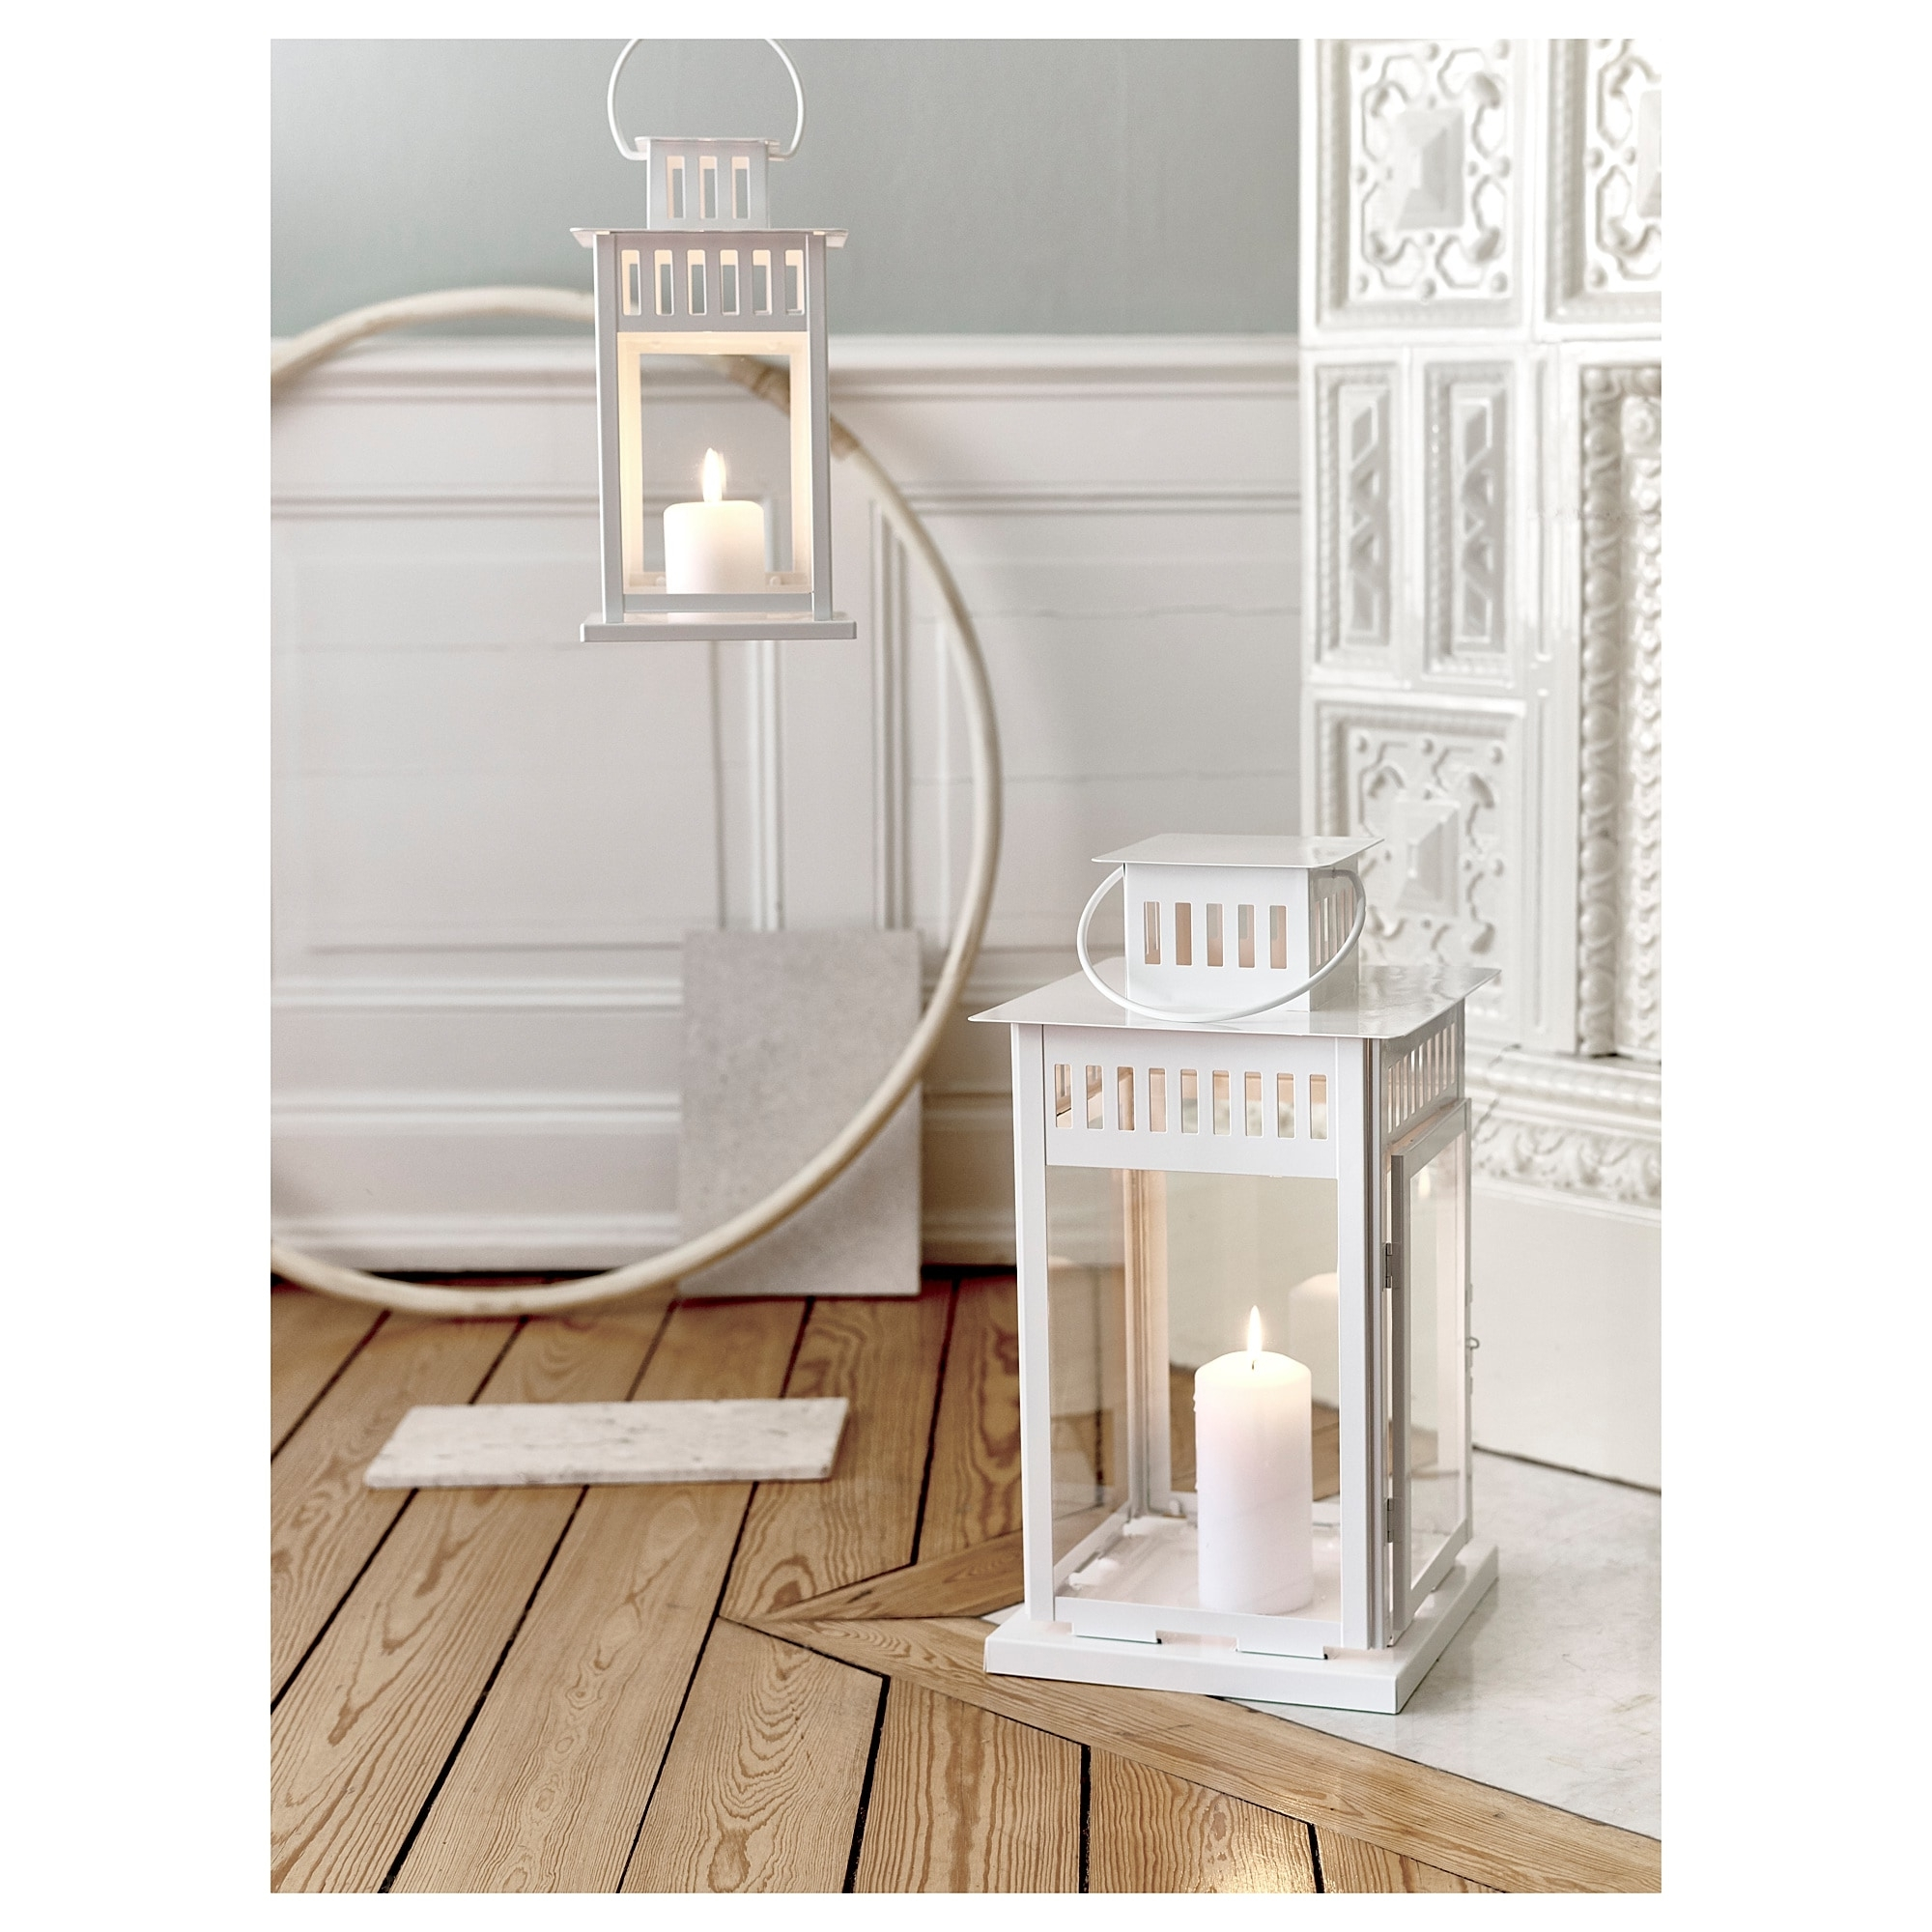 Ikea Outdoor Lanterns With Regard To 2019 Borrby Lantern For Block Candle In/outdoor White 28 Cm – Ikea (View 9 of 20)